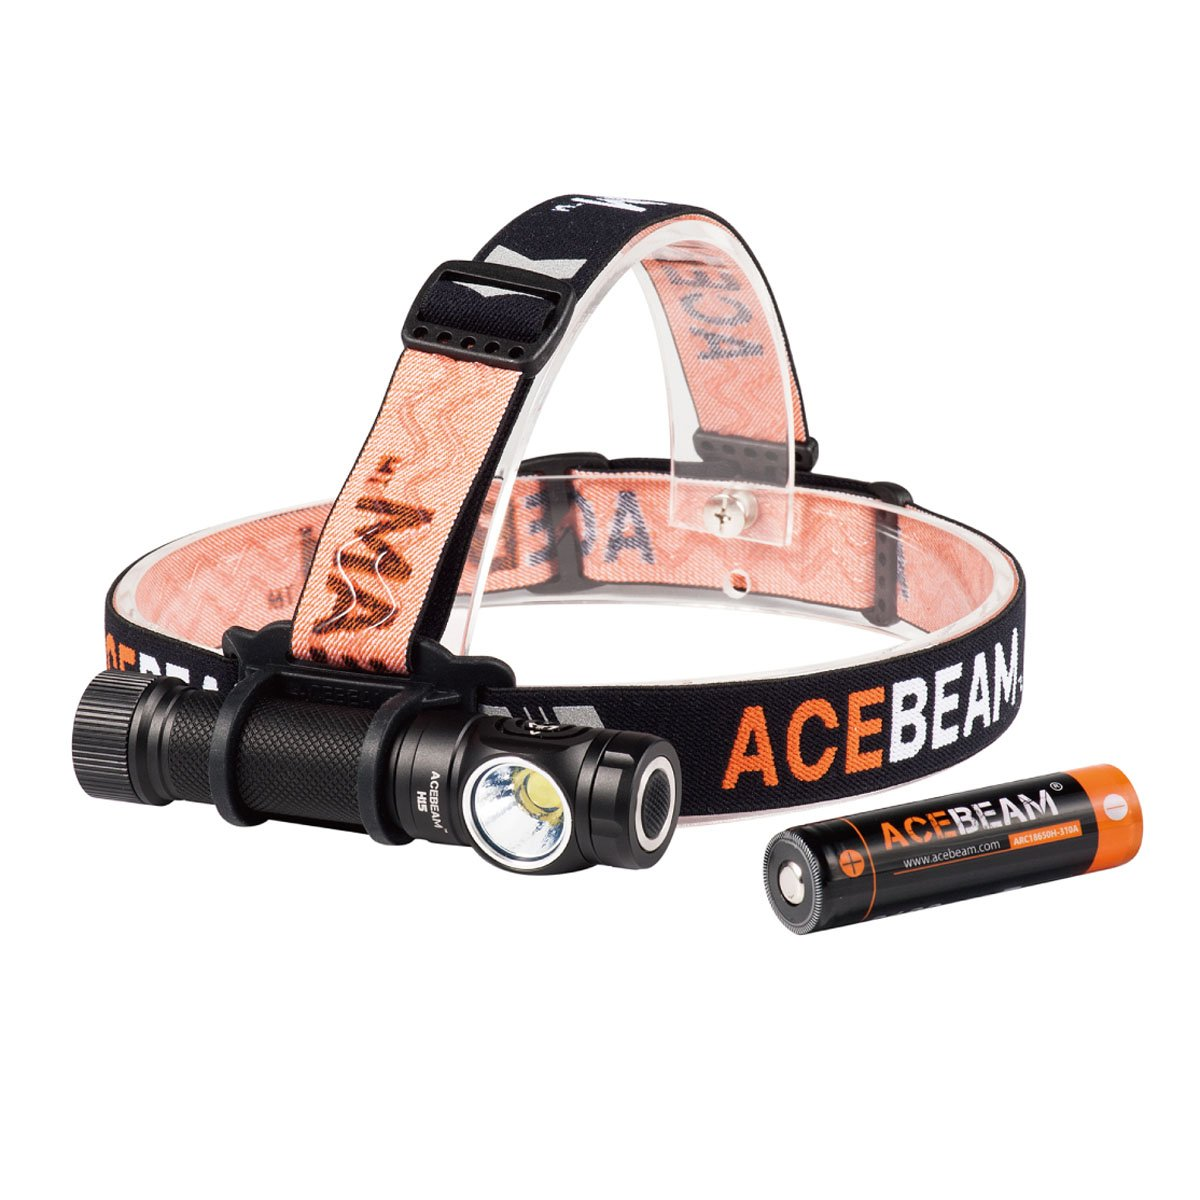 ACEBEAM H15 Head Lamp 2500 Lumens 16 Output Levels Headlight Flashlight For Medical,Reading,Runing,Working,Camping,Hunting